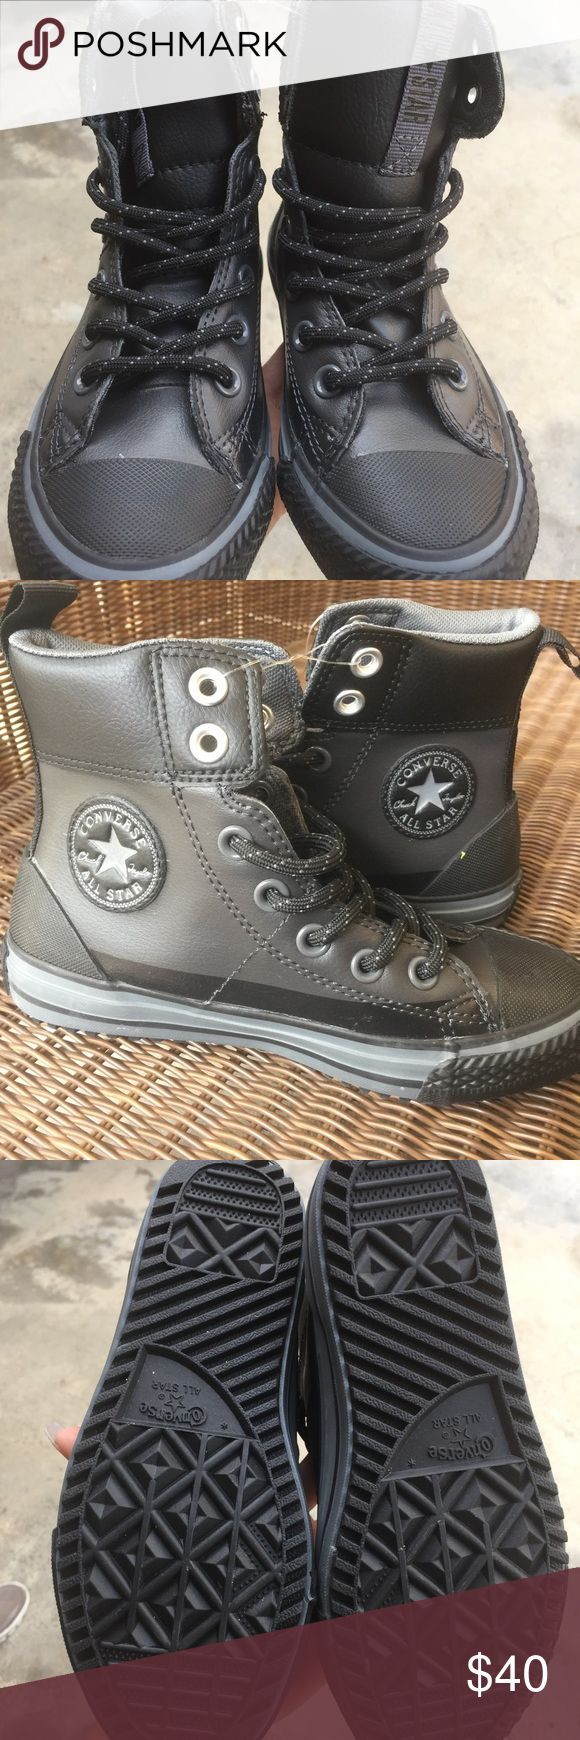 NWT BLACK LEATHER CONVERSE HIGH TOP SIZE 13.5 NWT BLACK LEATHER CONVERSE HIGH TOP SNEAKER FOR LITTLE BOY SIZE 13.5 Converse Shoes Sneakers